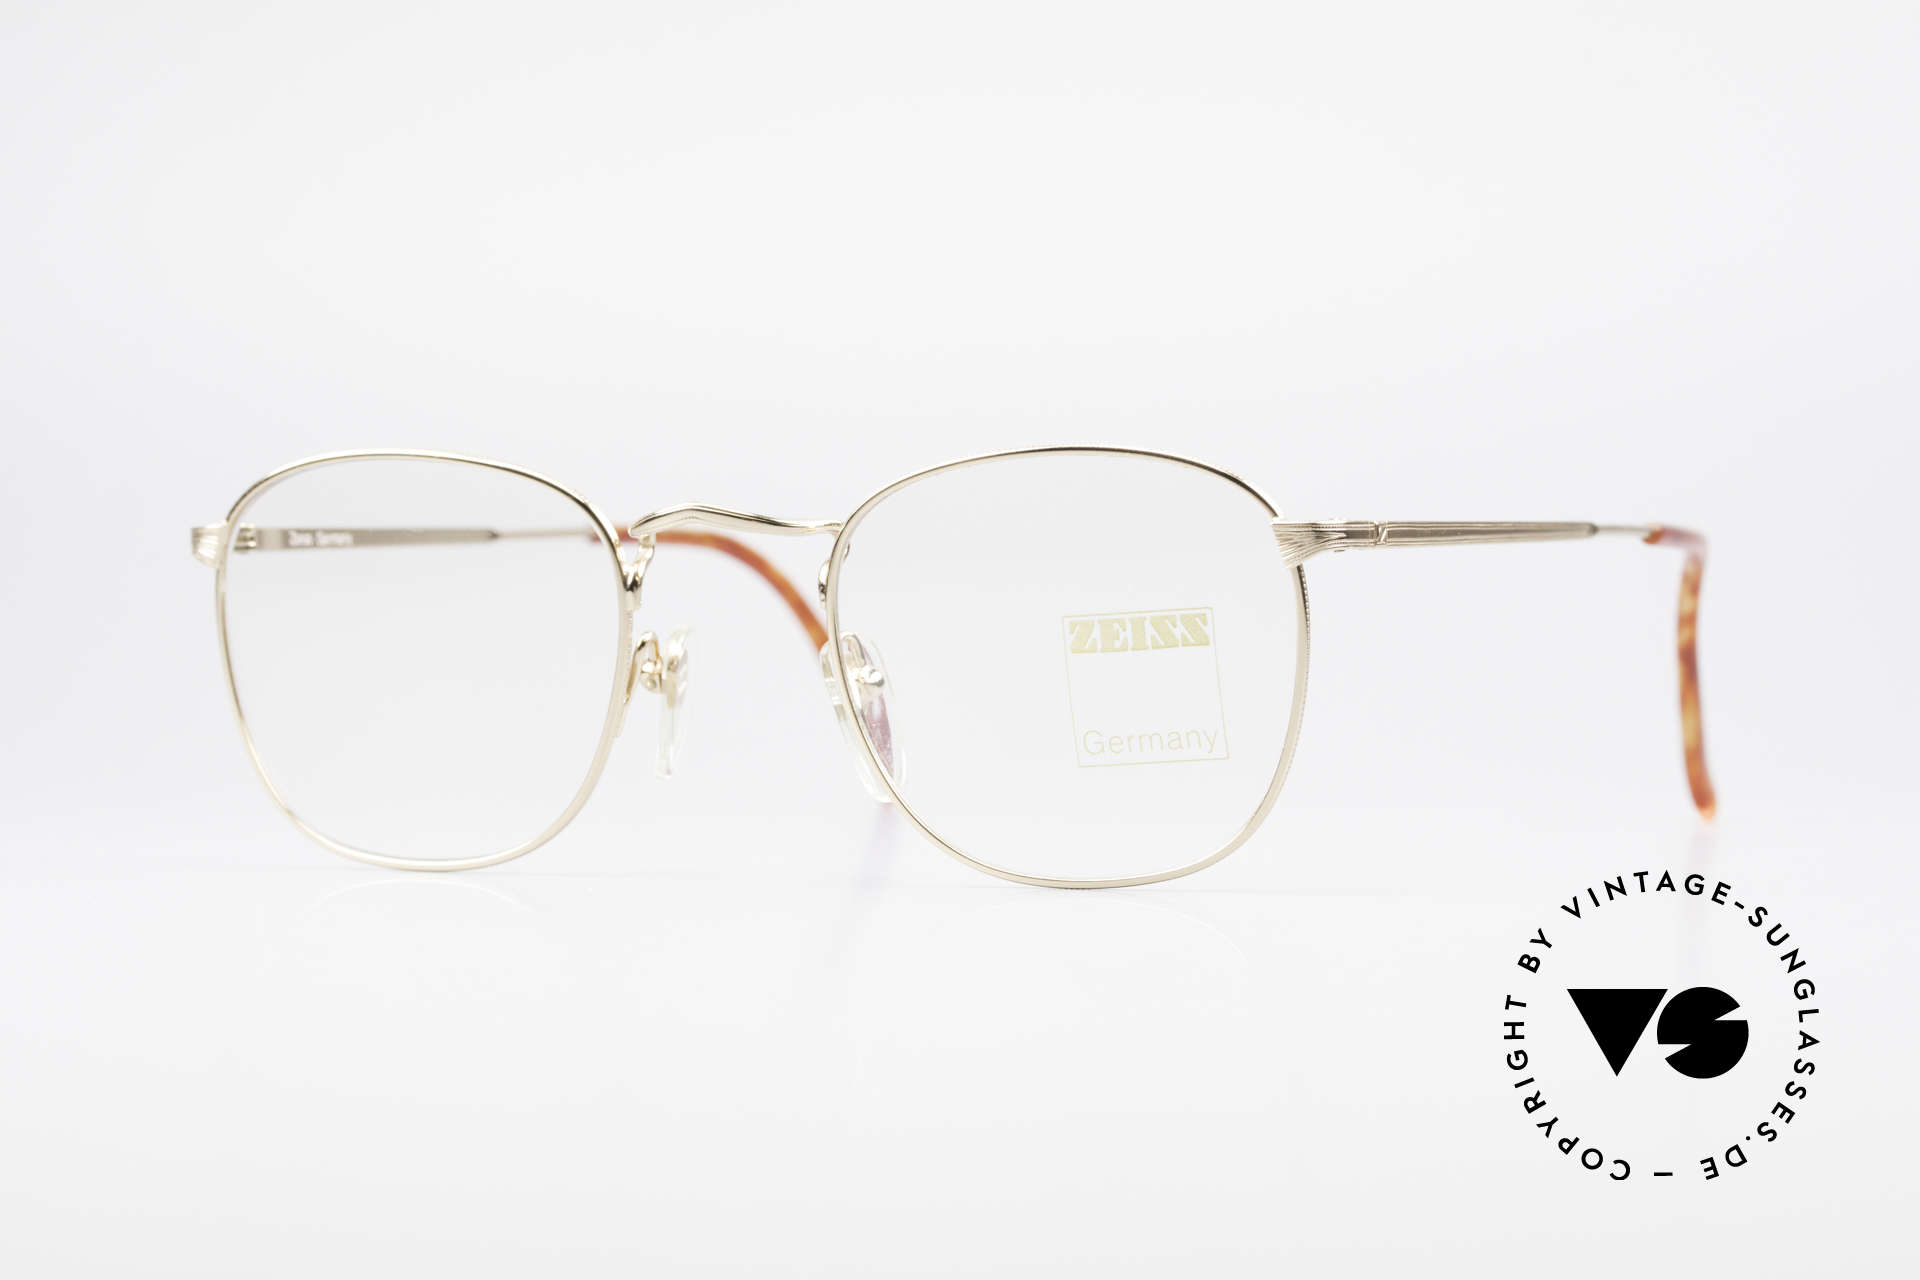 Zeiss 5988 Old Vintage 90's Glasses Men, sturdy vintage eyeglass-frame by Zeiss from app. 1990, Made for Men